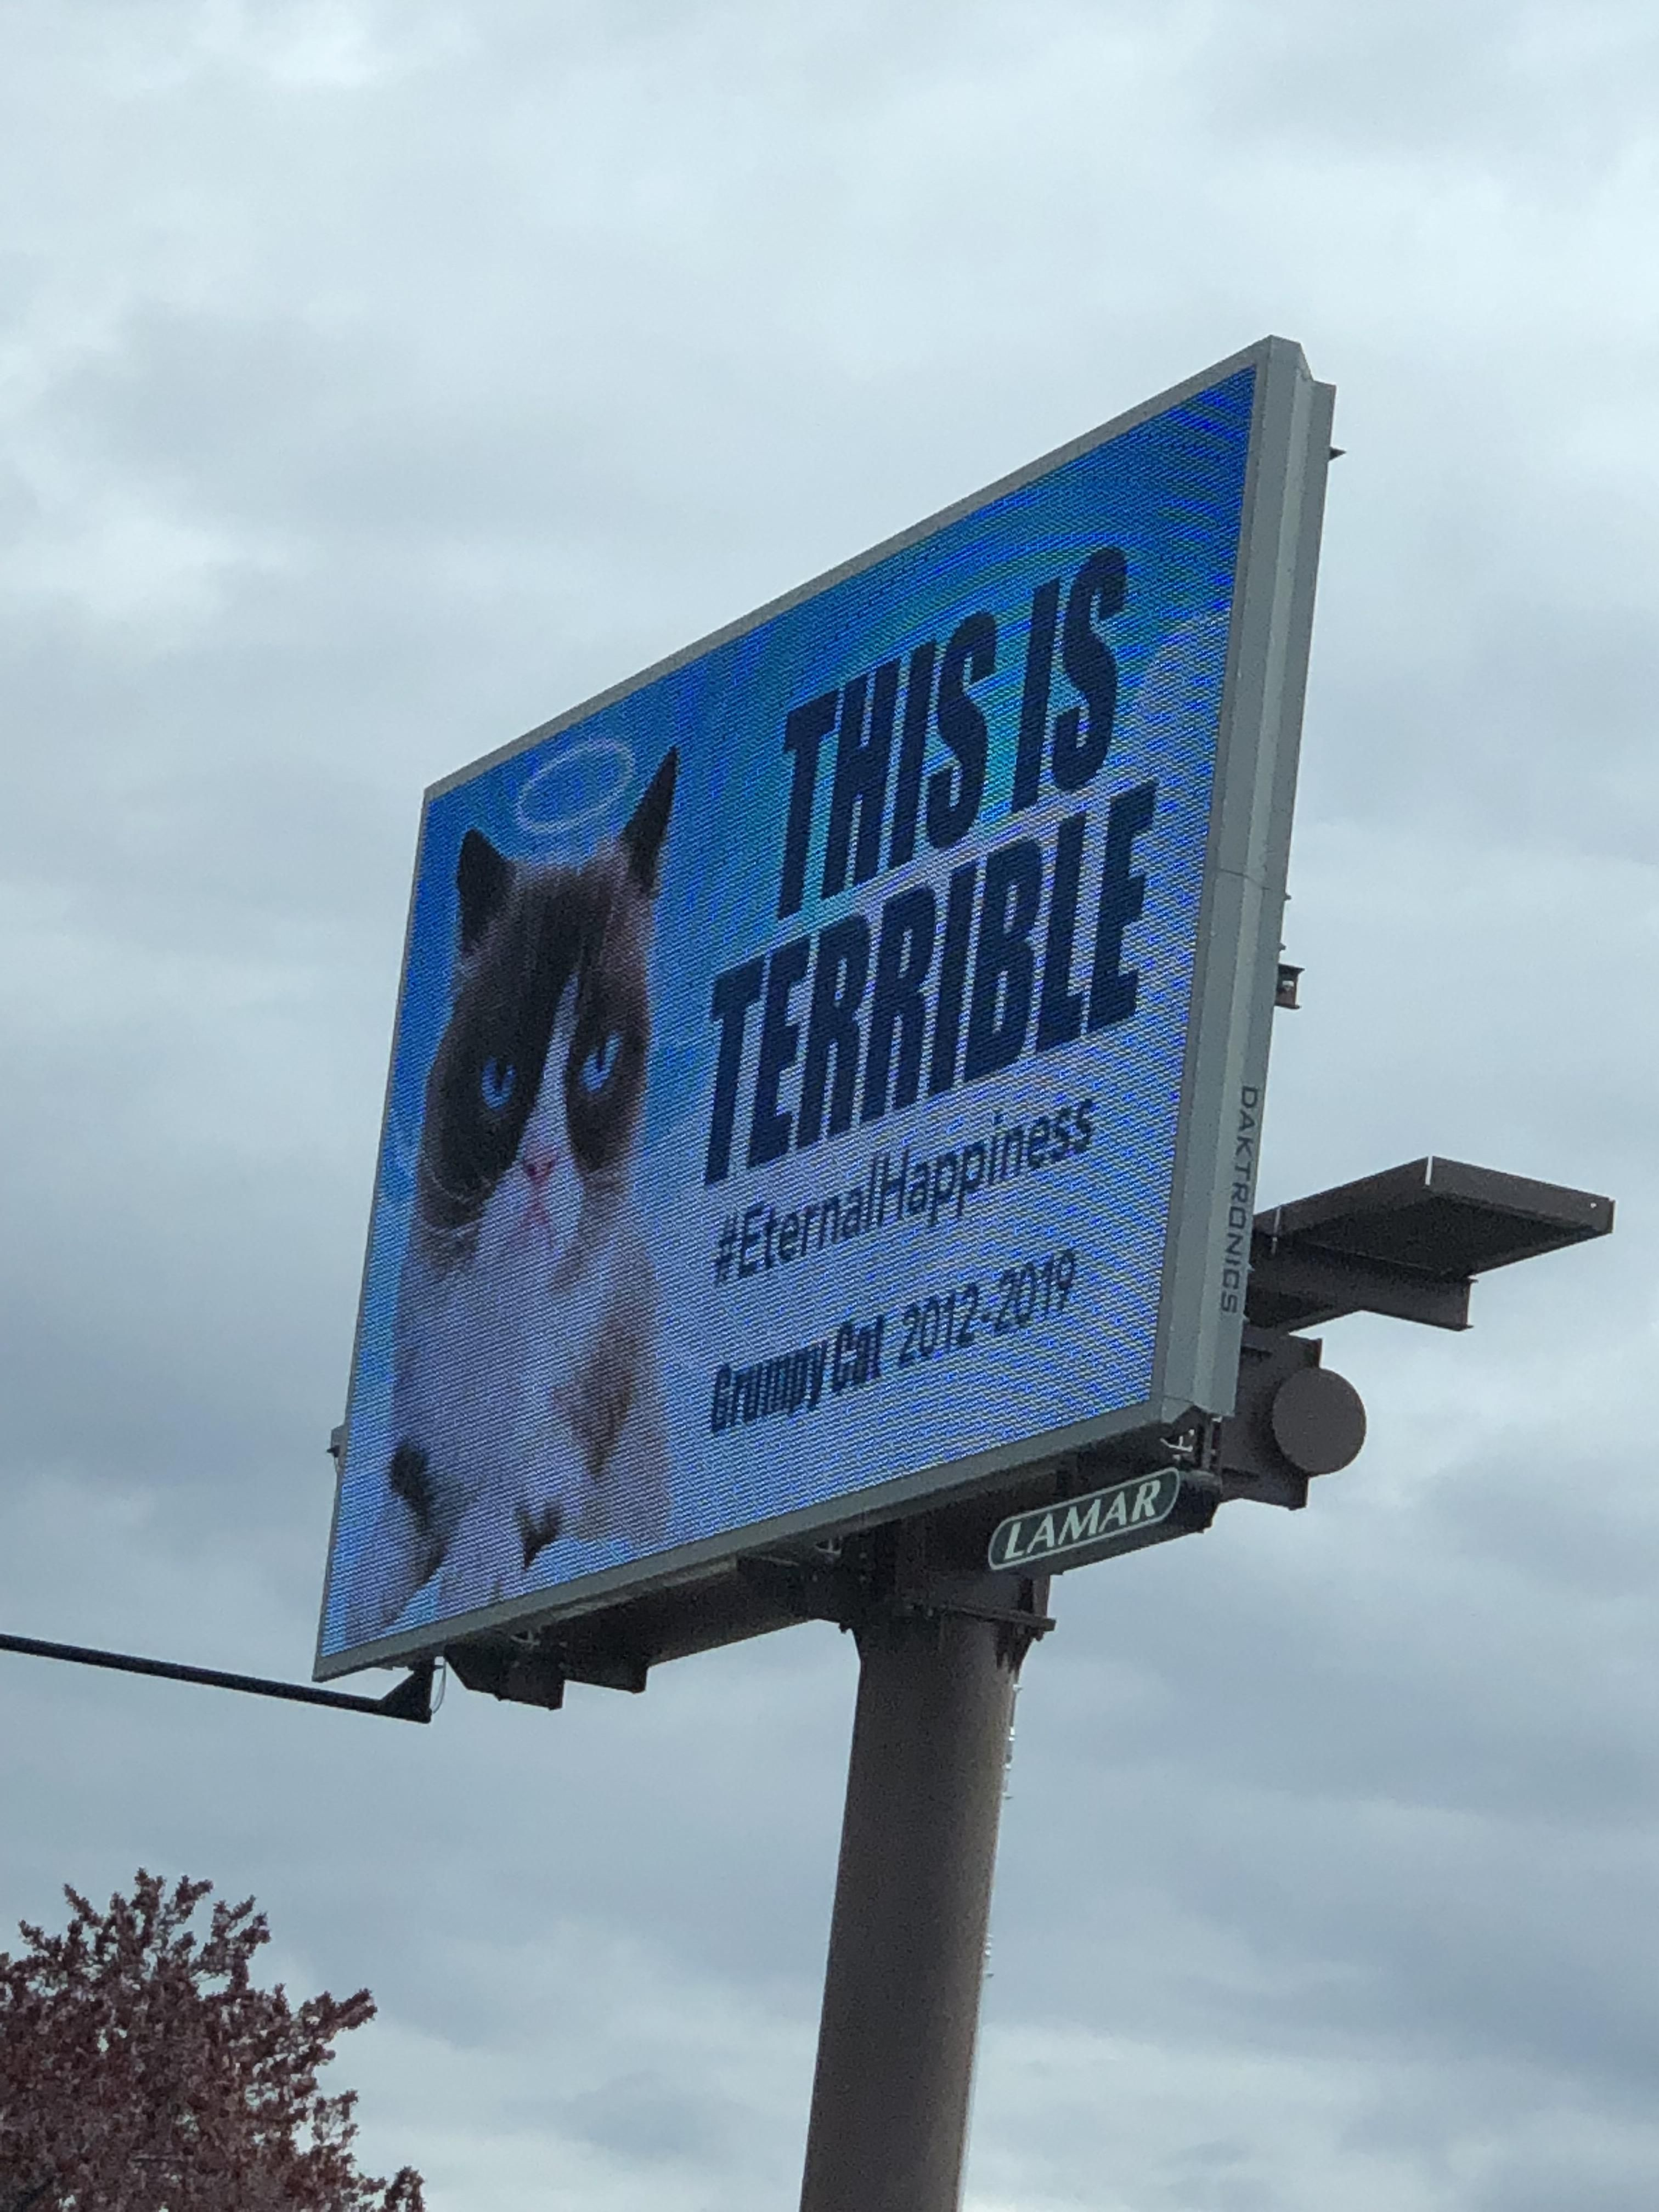 A billboard in my city paying respects to the greatest